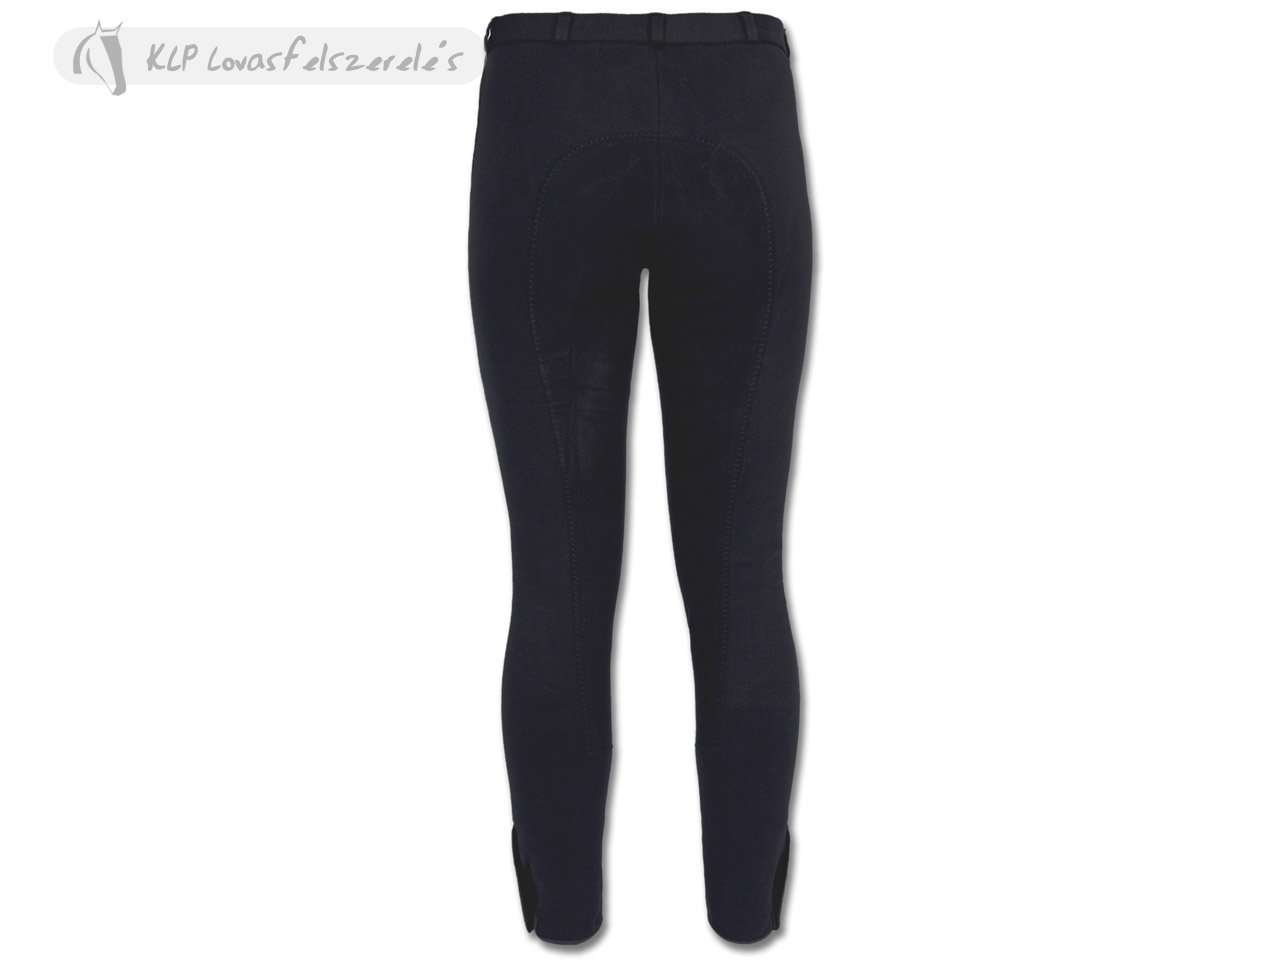 Elt Classic Fun Ladies Full Seat Breeches